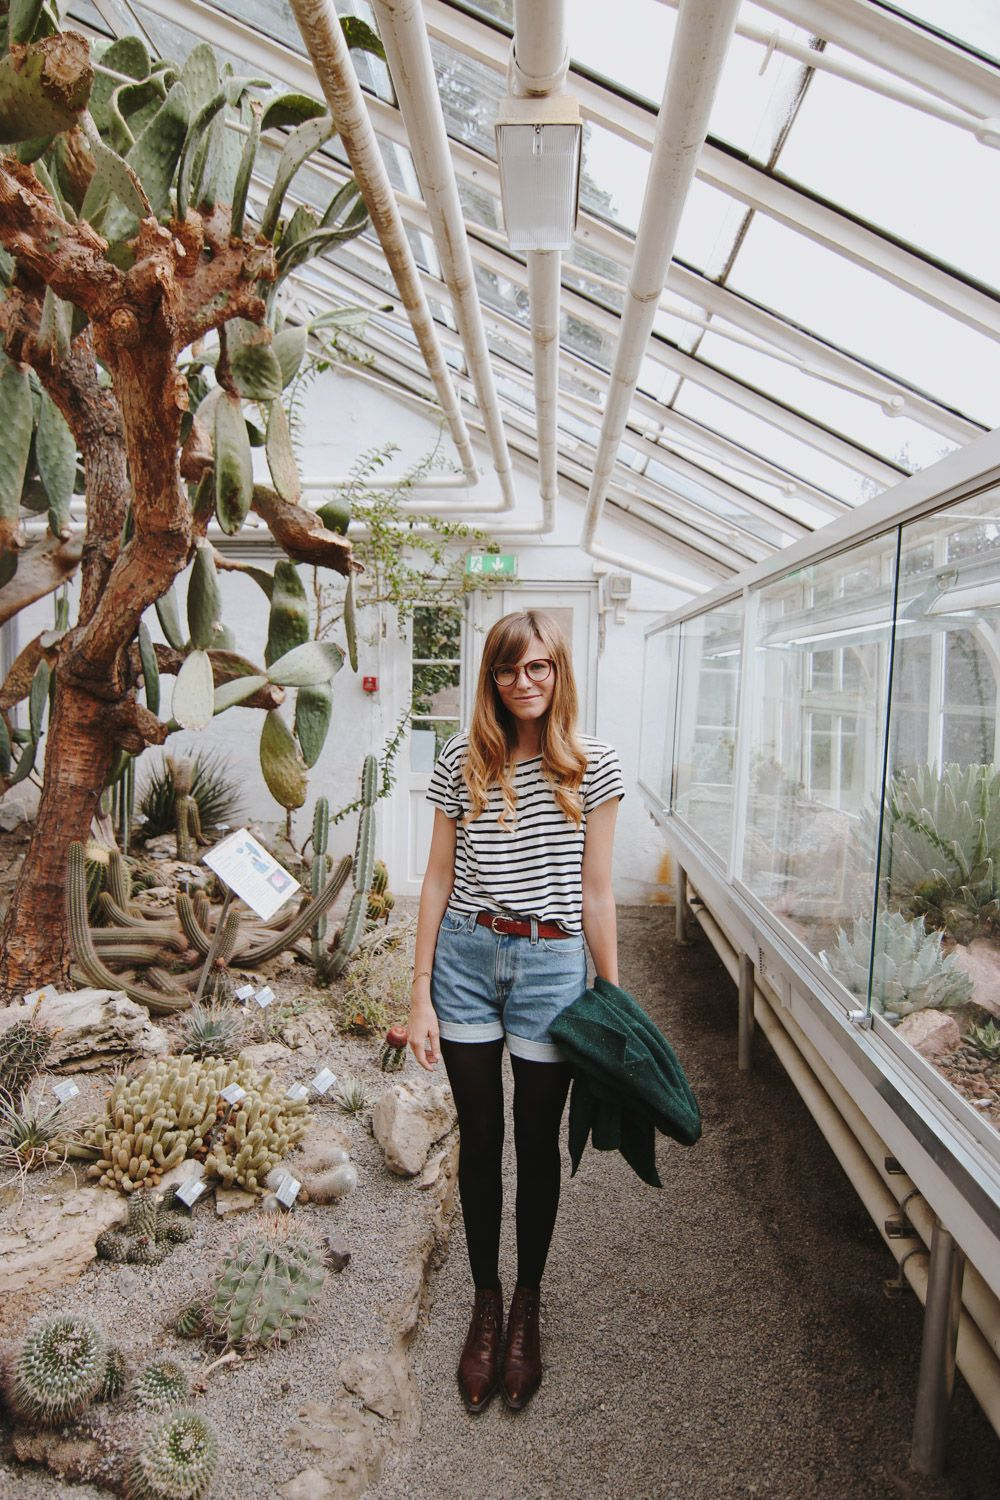 Oslo Botanical Gardens A Day Walking Around The Cactus Spring Summer Fashion Fashion Outfit Goals